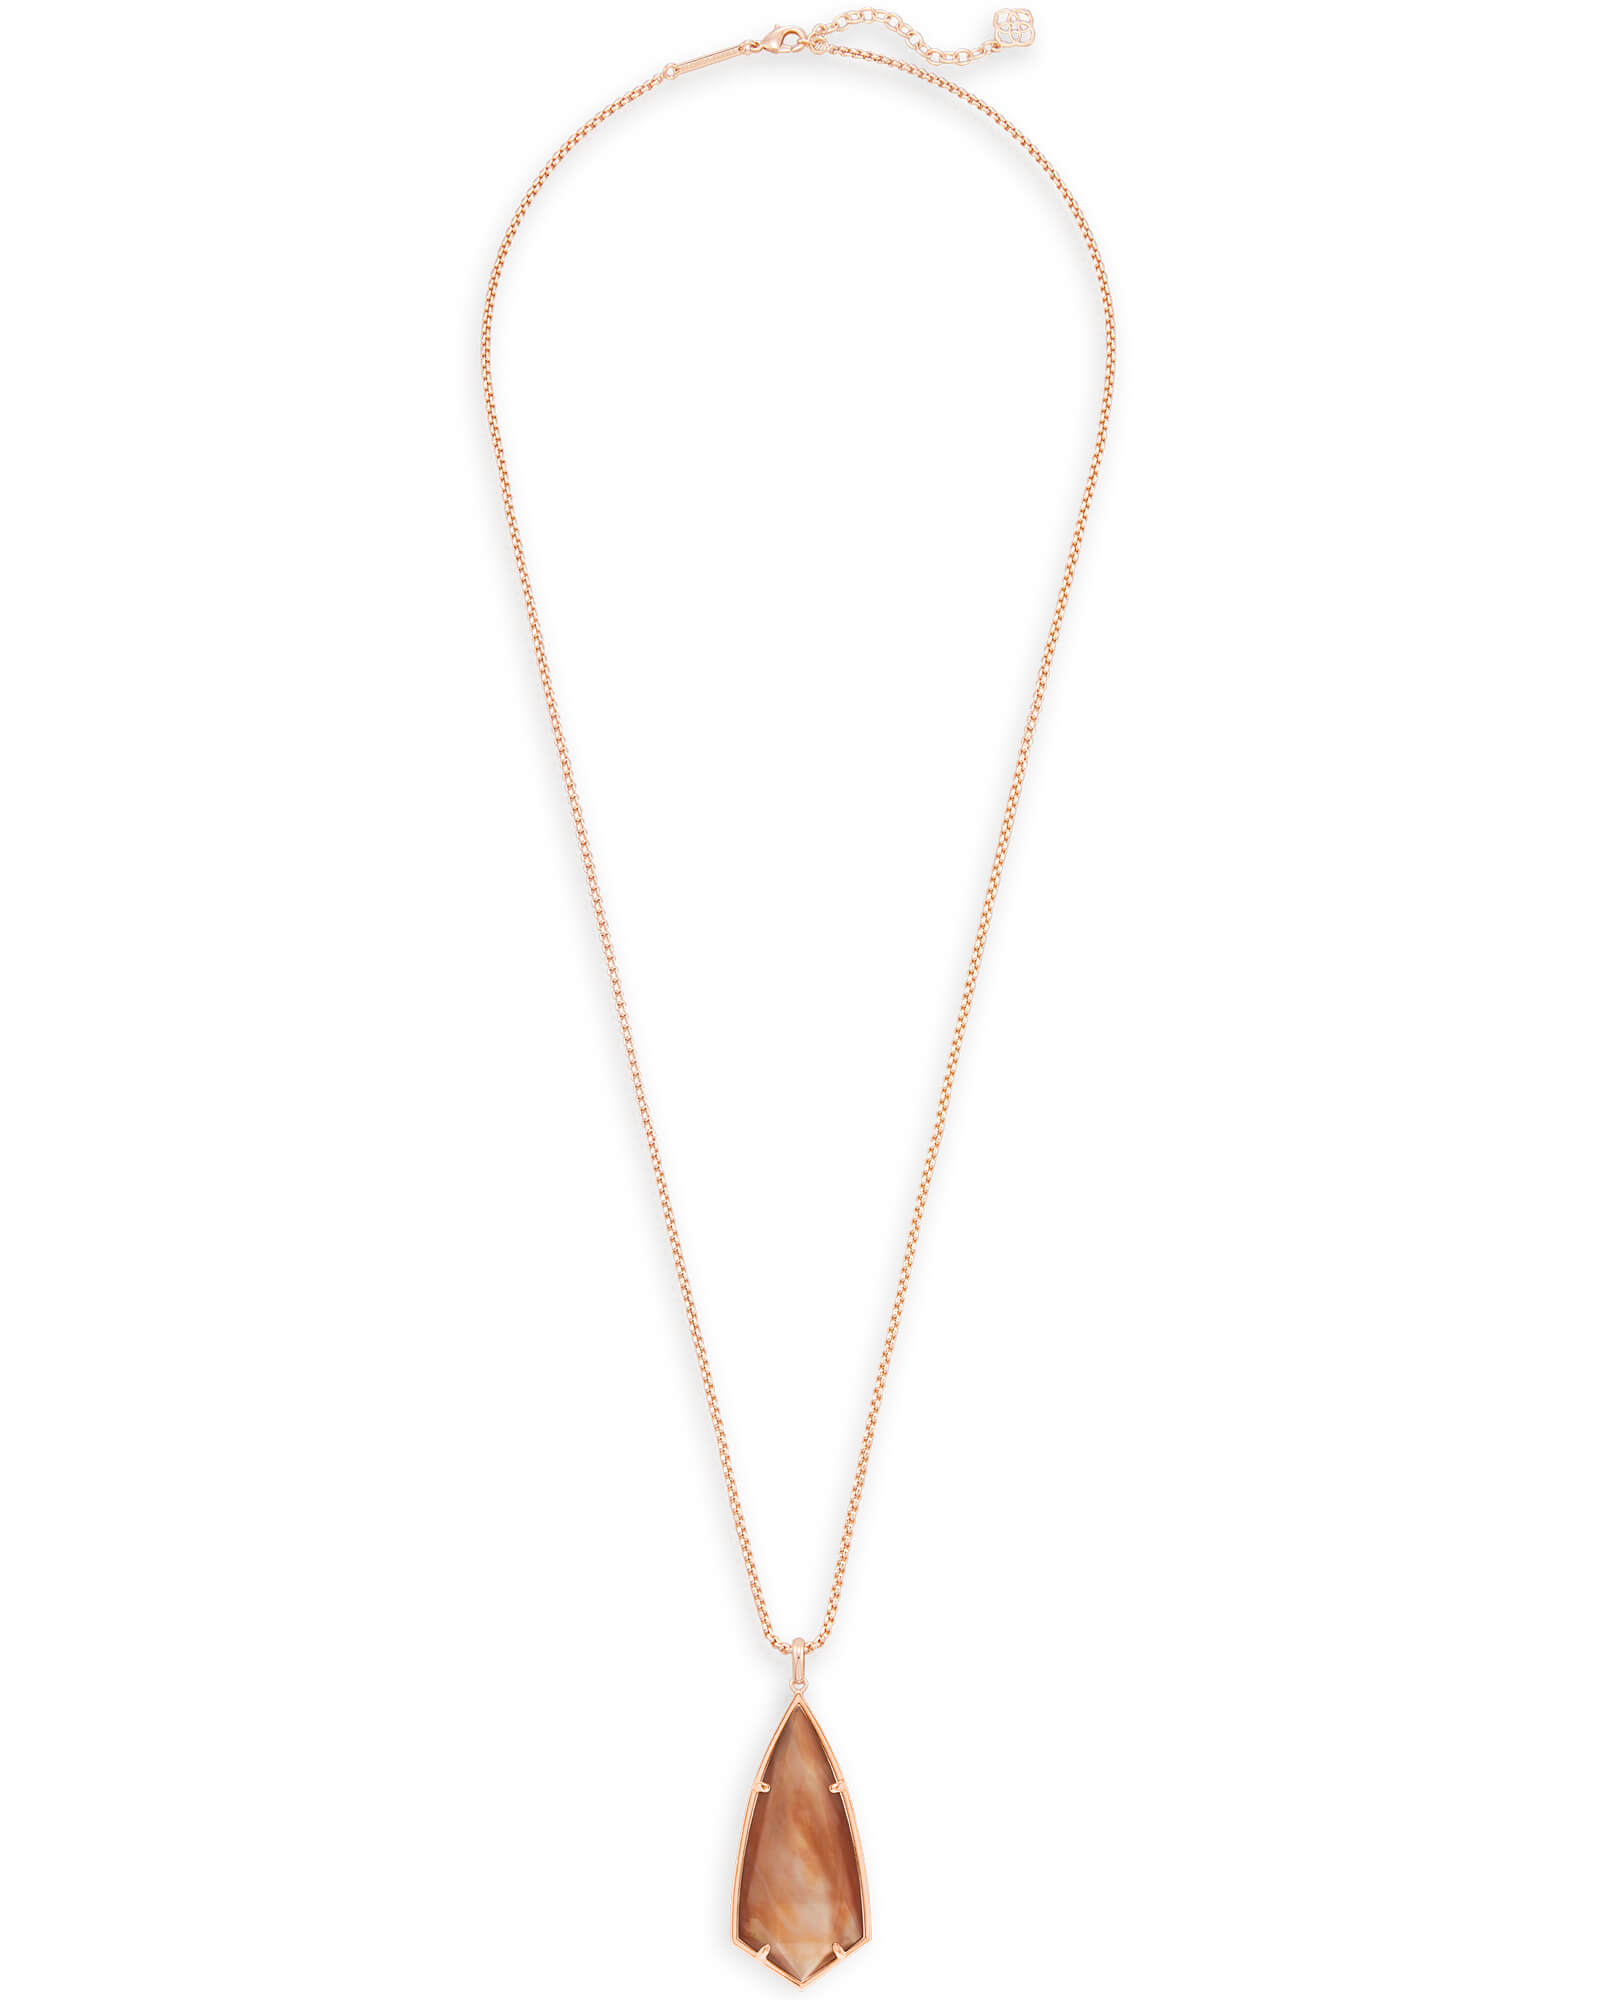 Carole Long Pendant Necklace in Brown Pearl